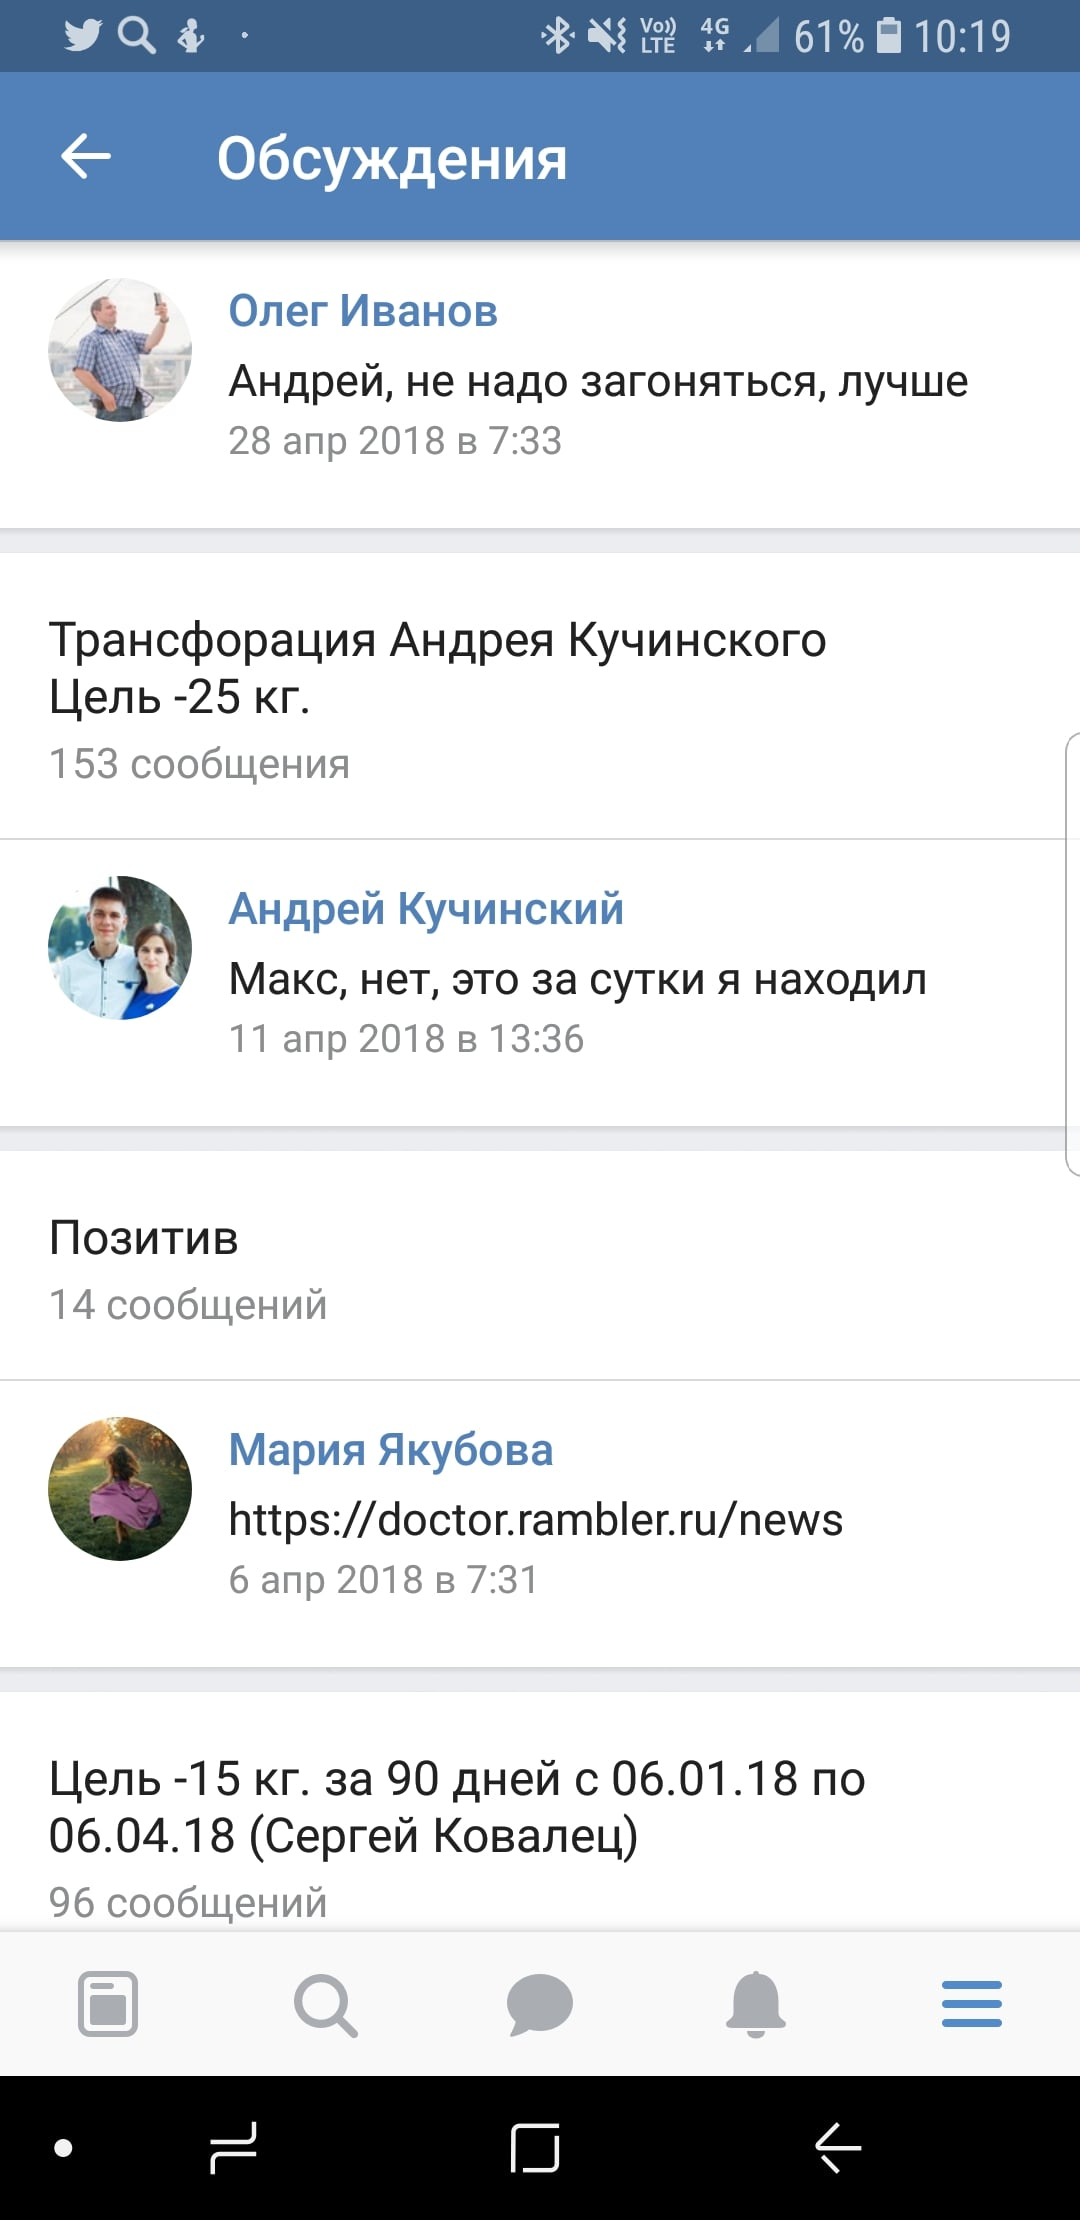 Screenshot_20190109-101907_VK.jpg